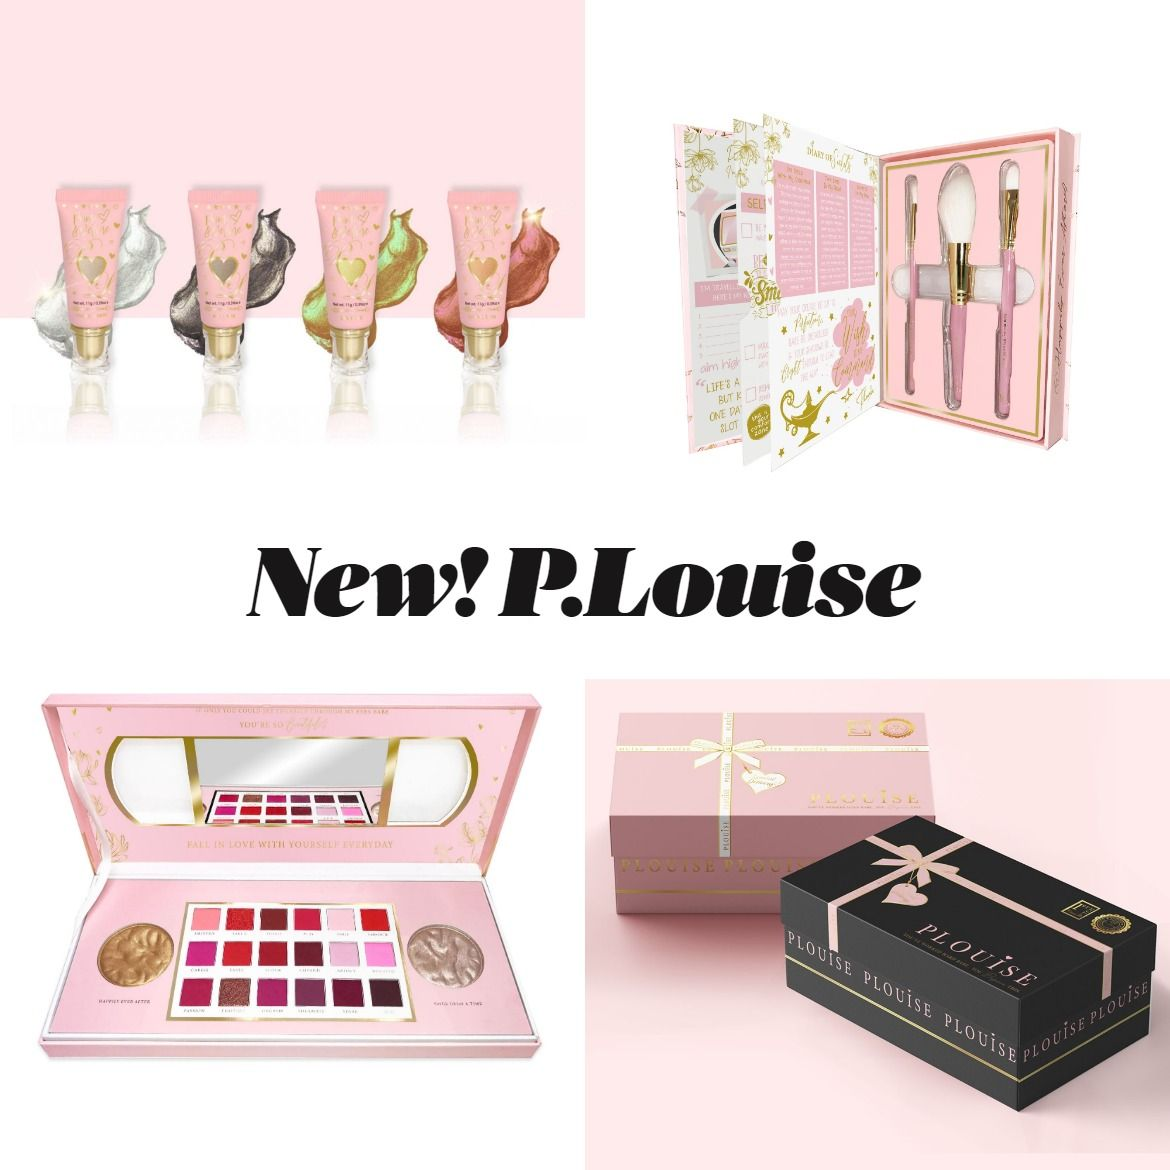 New Makeup! Plouise Valentines Day Collection 2020